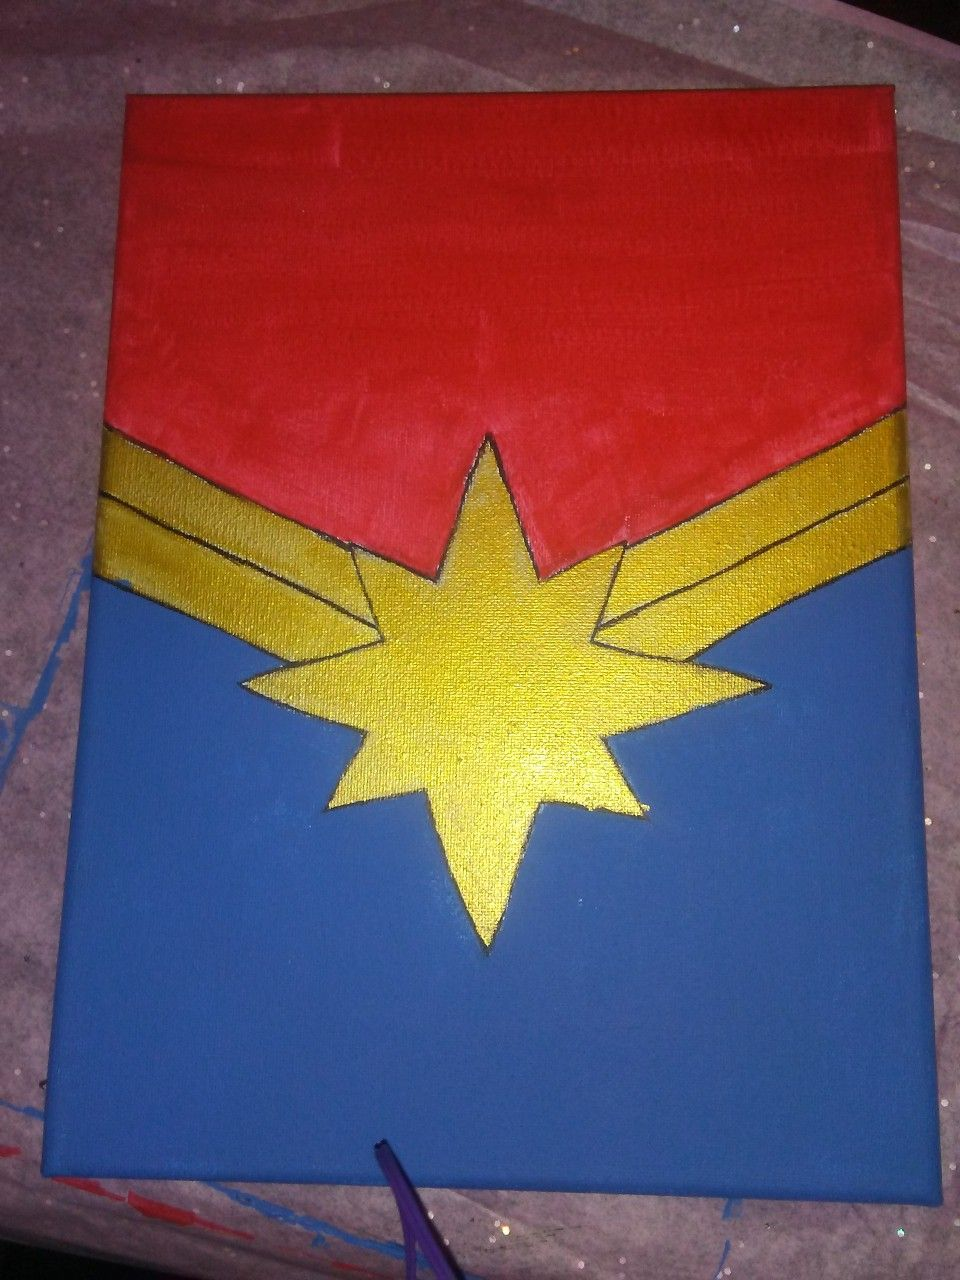 Captain Marvel symbol painting | My edits and paintings in